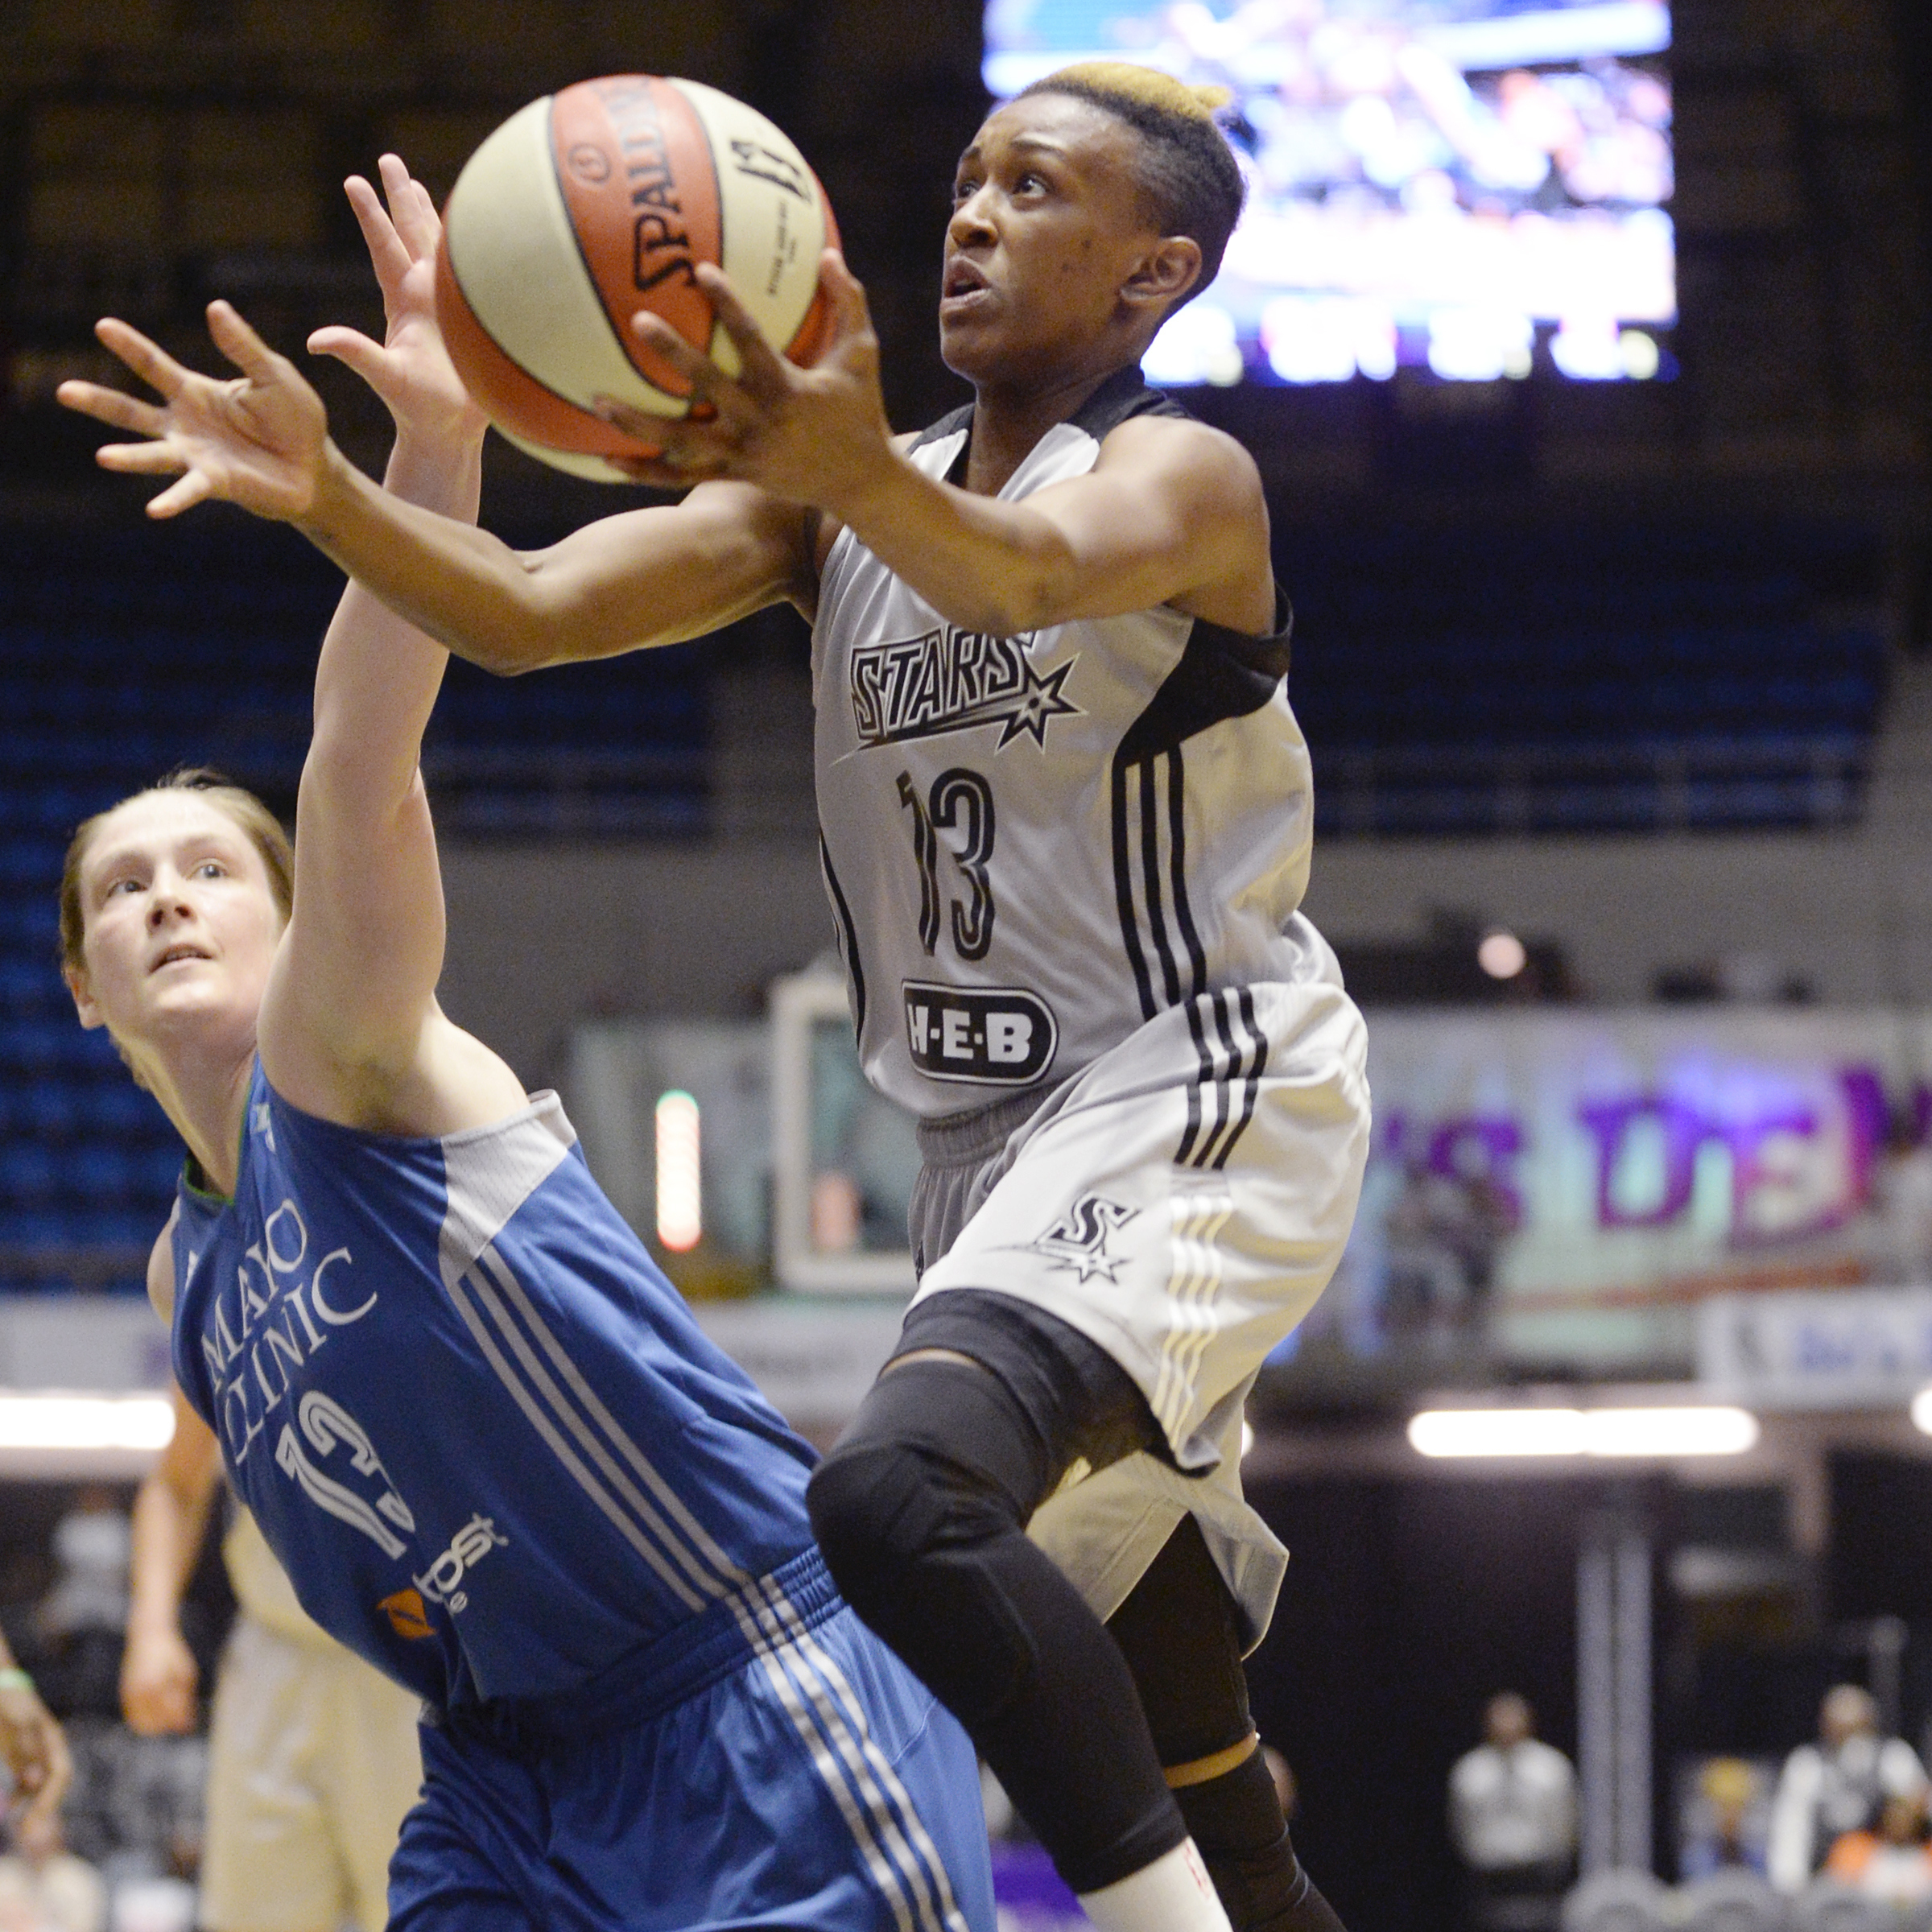 Stars guard Danielle Robinson struggled against the Lynx finishing with just six points and five assists.